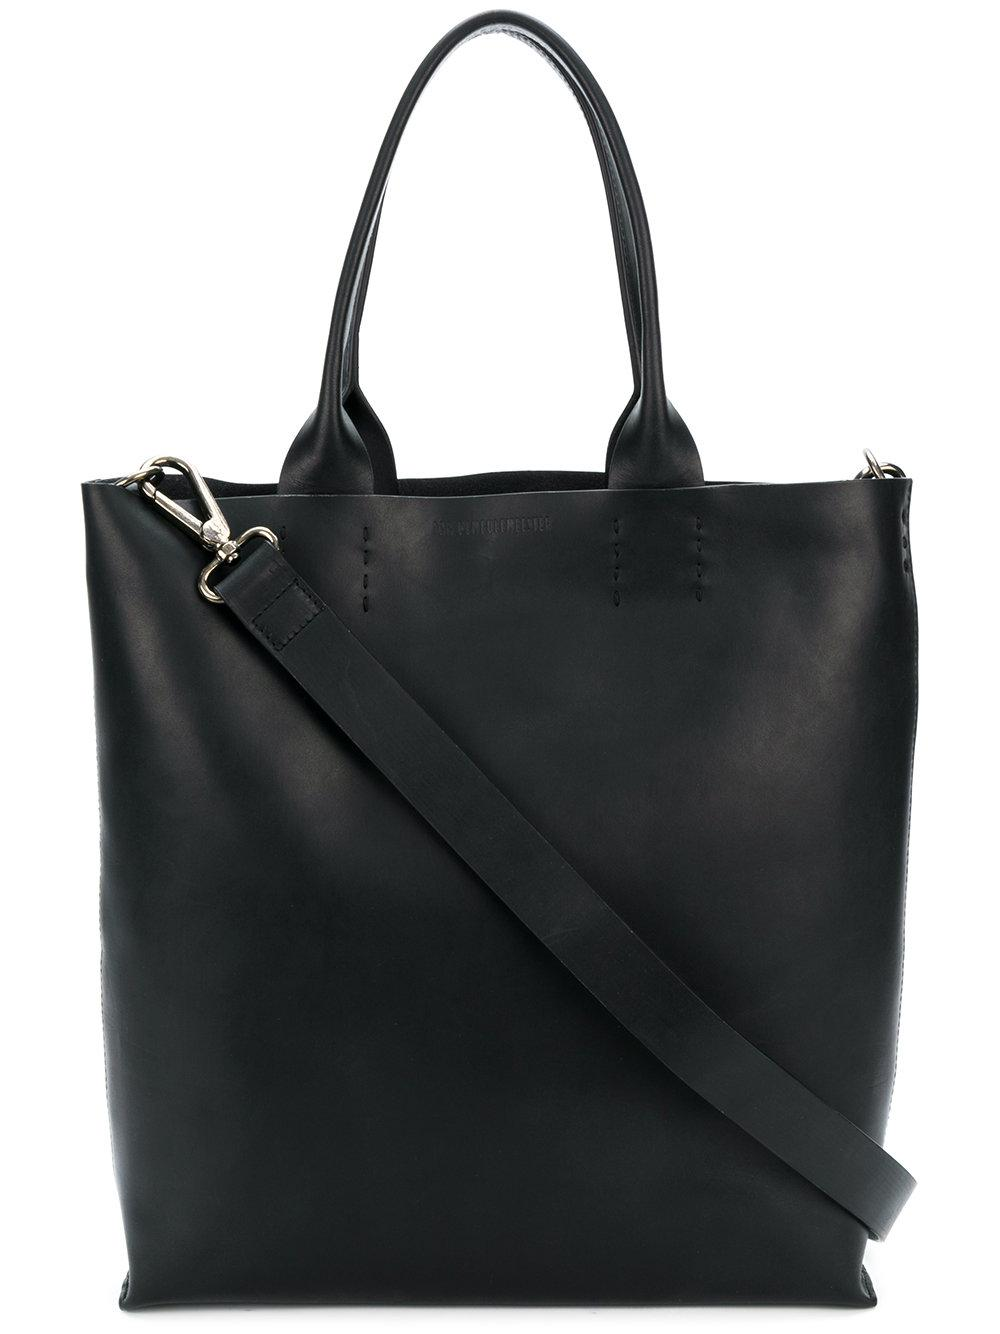 Ann Demeulemeester Tote Bag